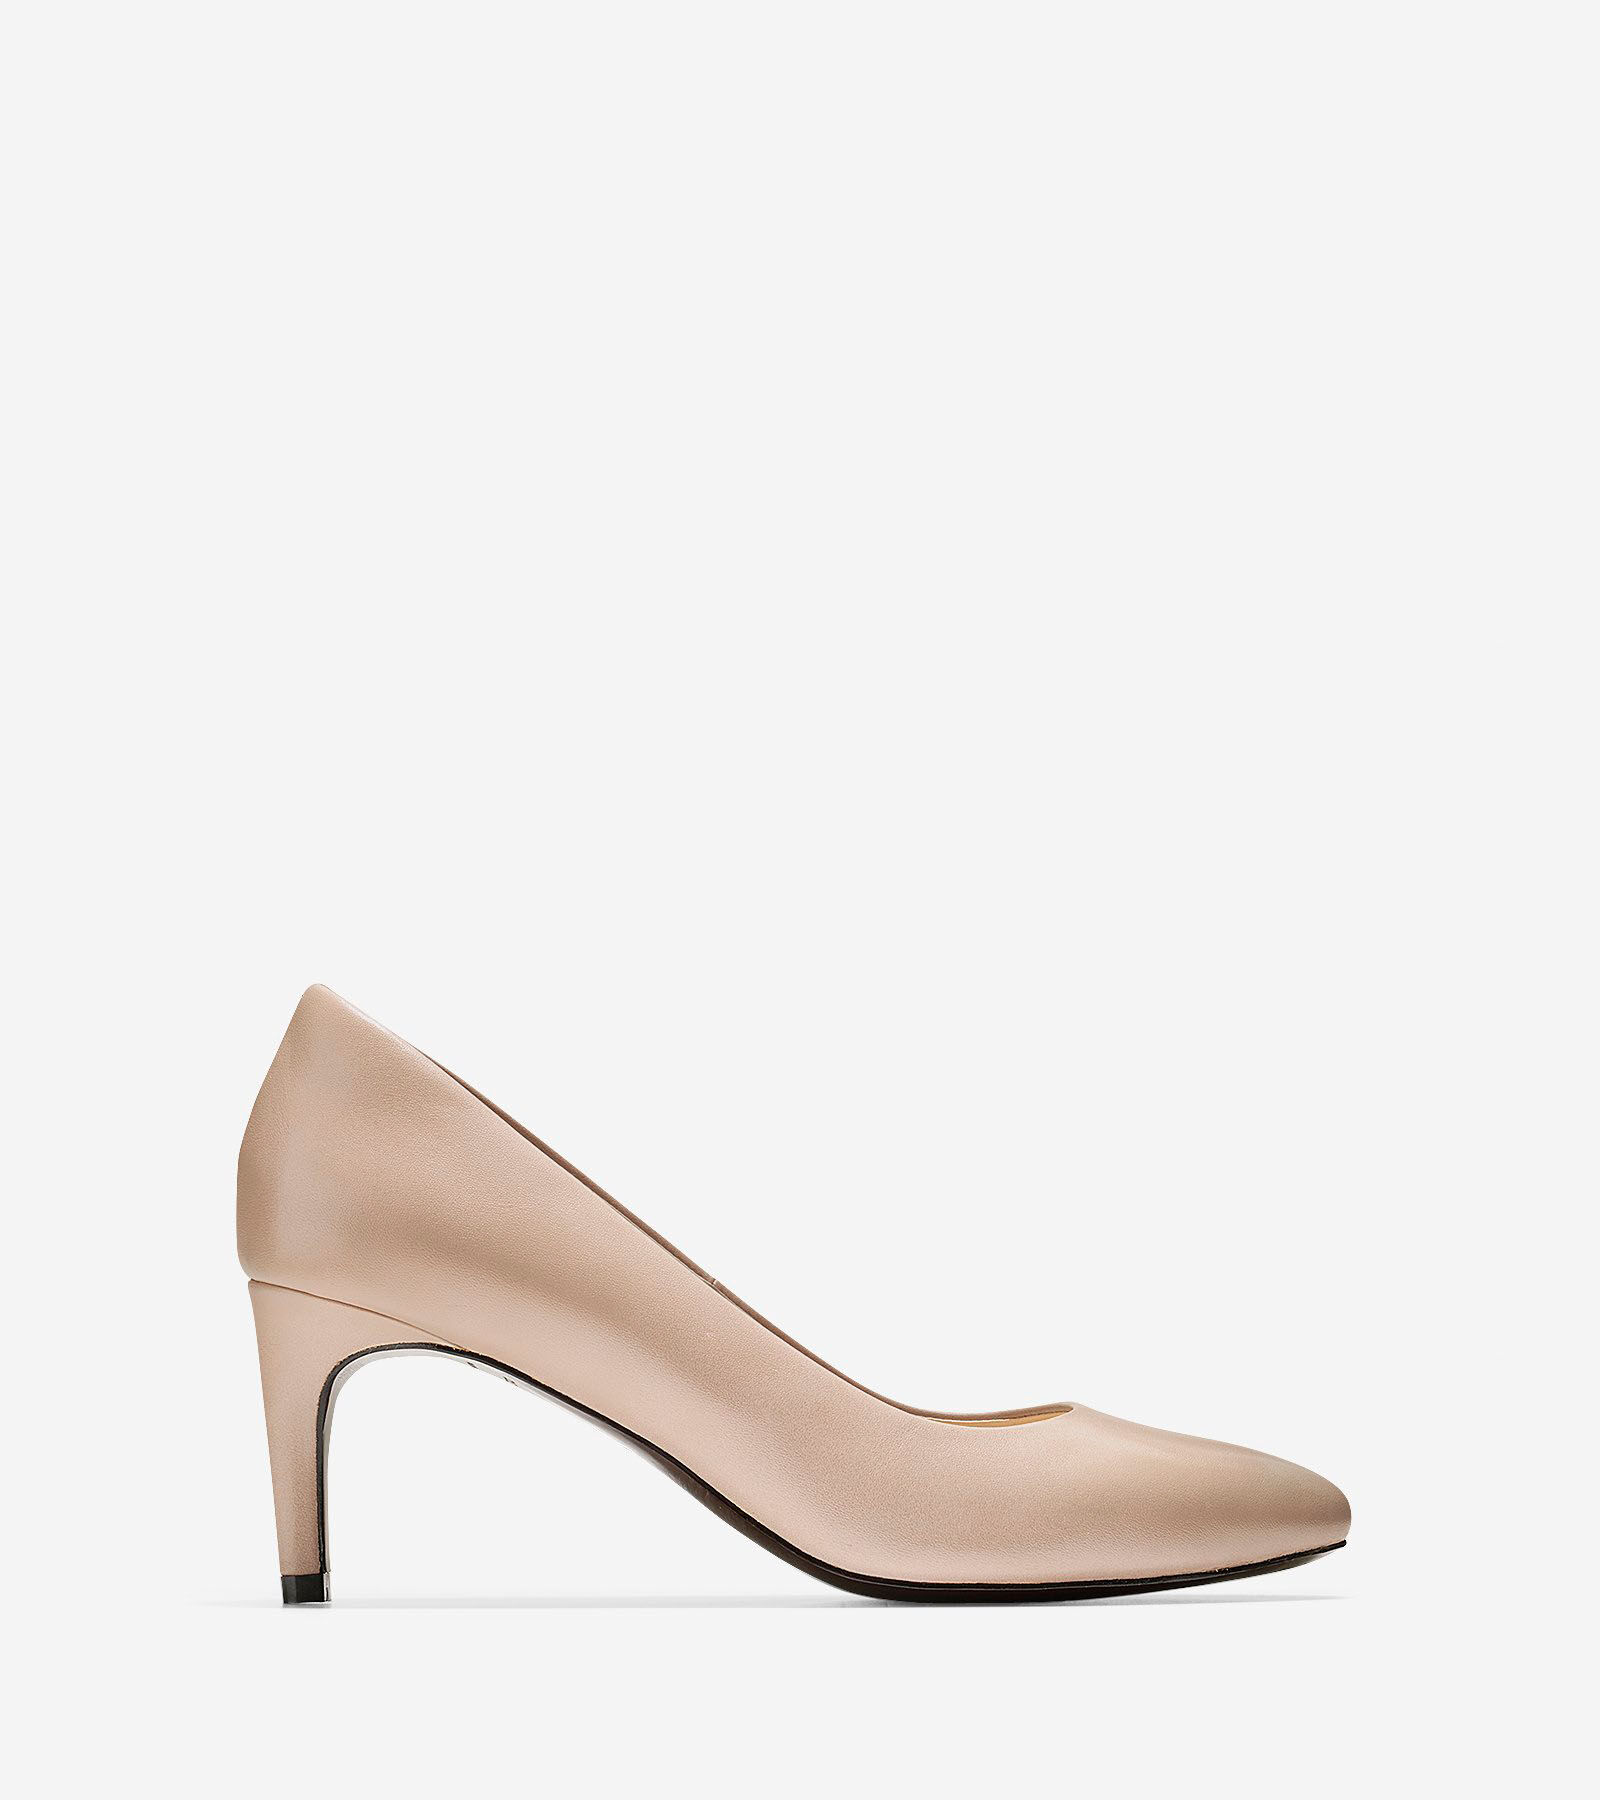 cole haan shoes grand 65mm equals how many cm are in an inch rul